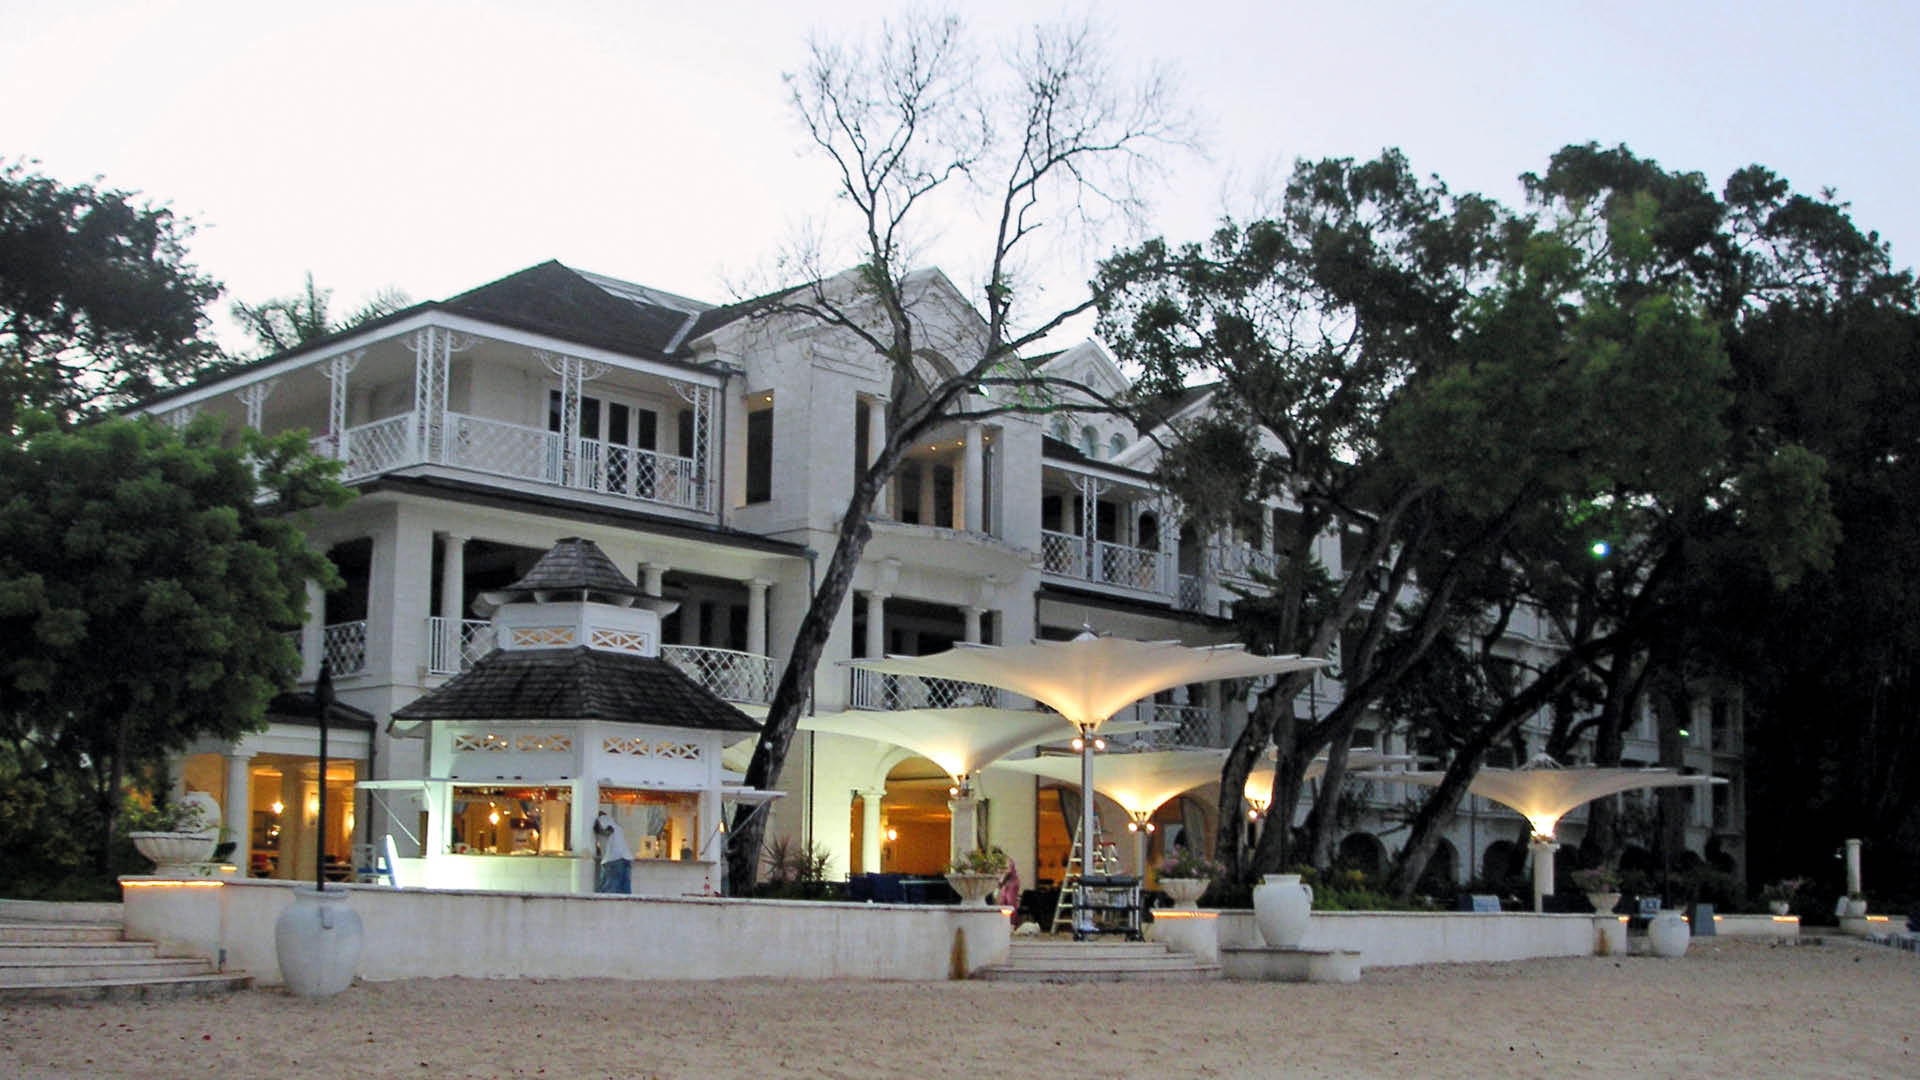 A prestigious address in the Caribbean - The Sandy Lane Hotel in Barbados is widely regarded as one of the most luxurious resorts in the West Indies.